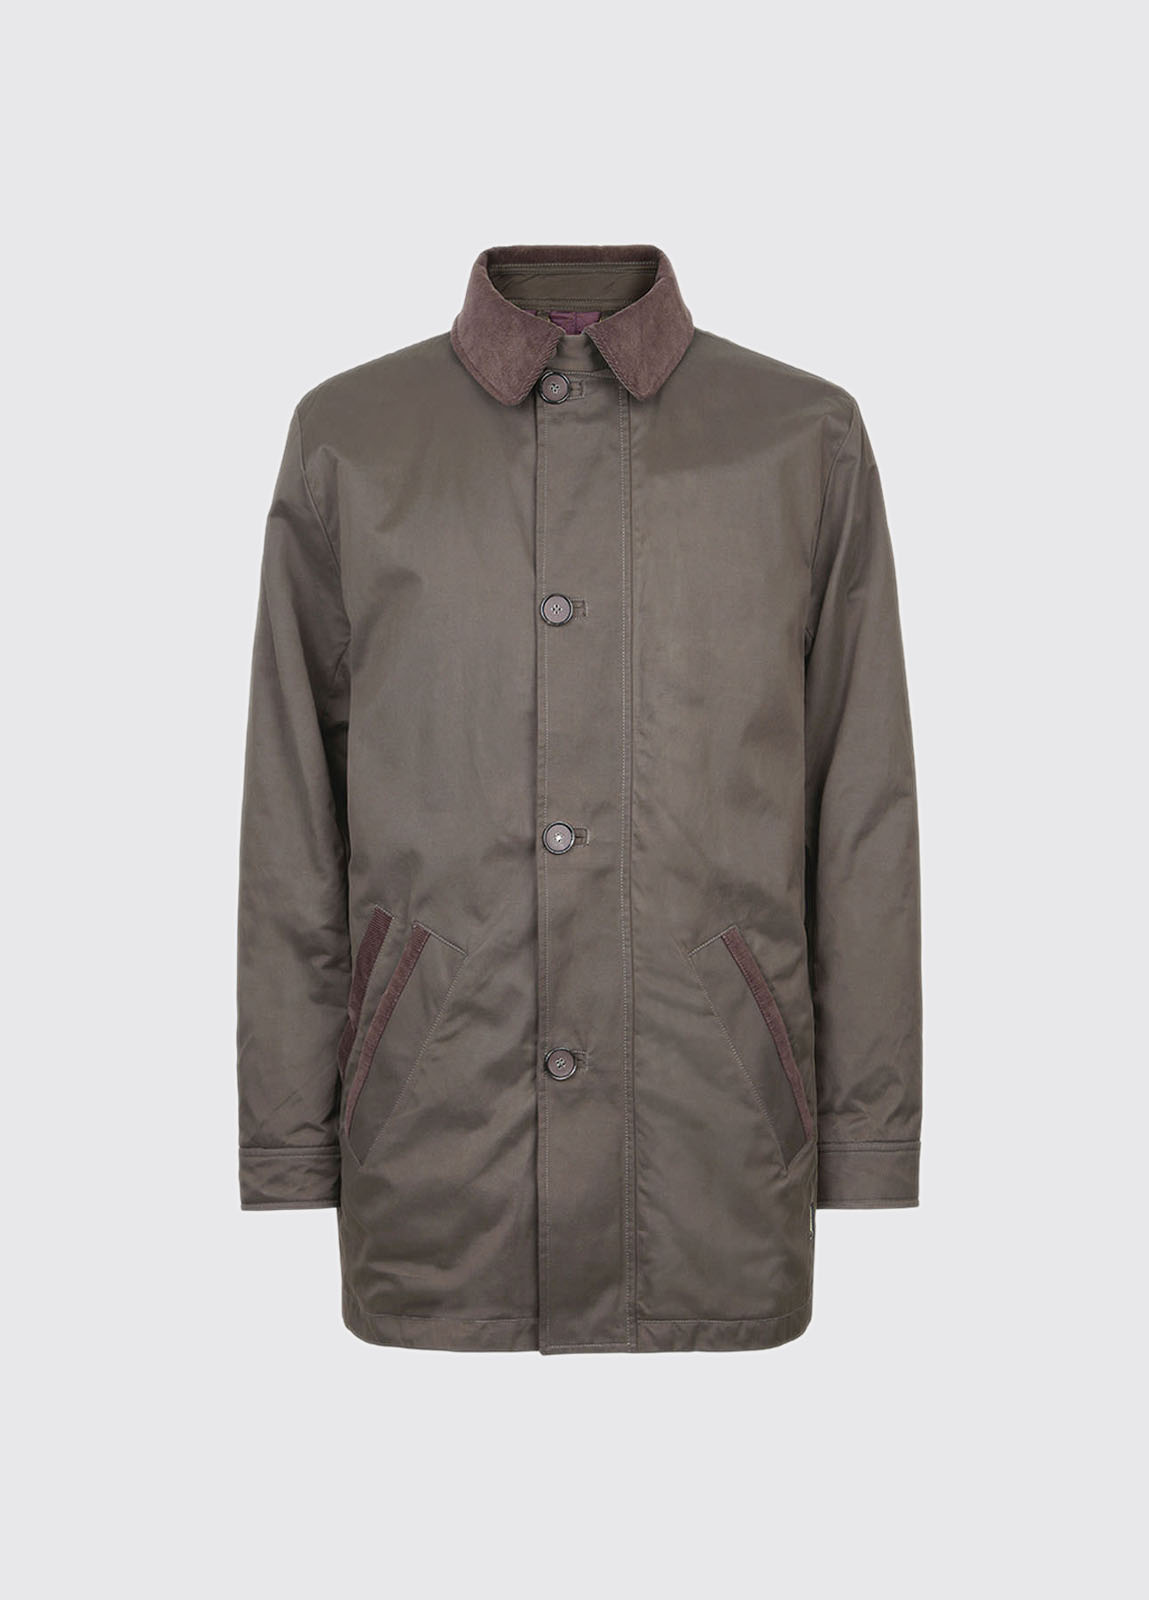 Doyle Men's Waterproof Jacket - Verdigris